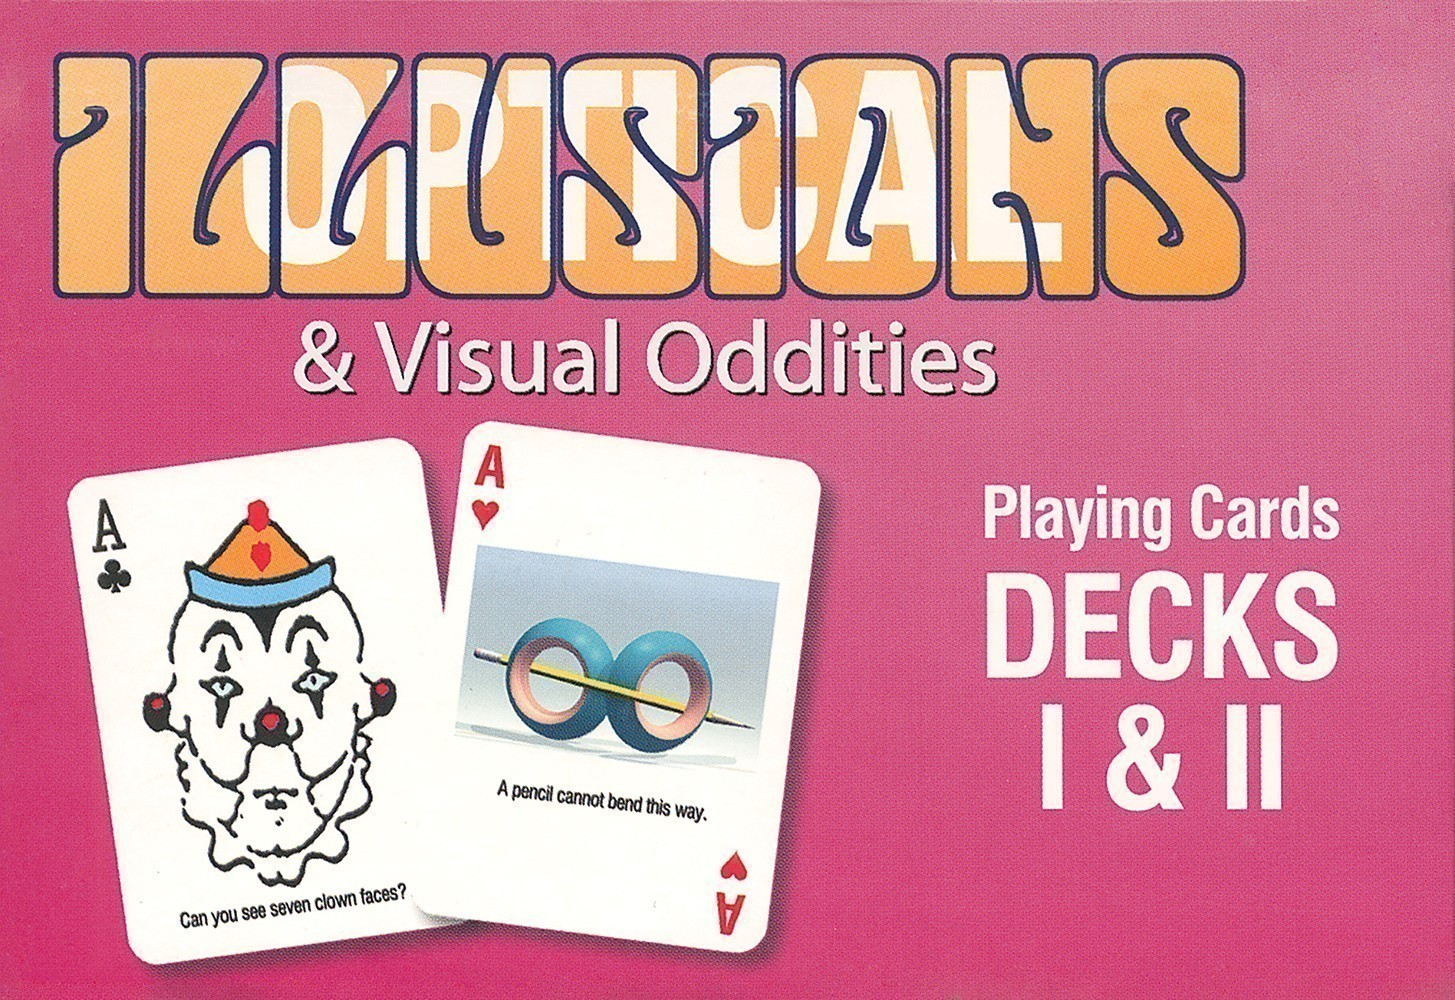 Optical Illusions & Visual Oddities Double Deck Set